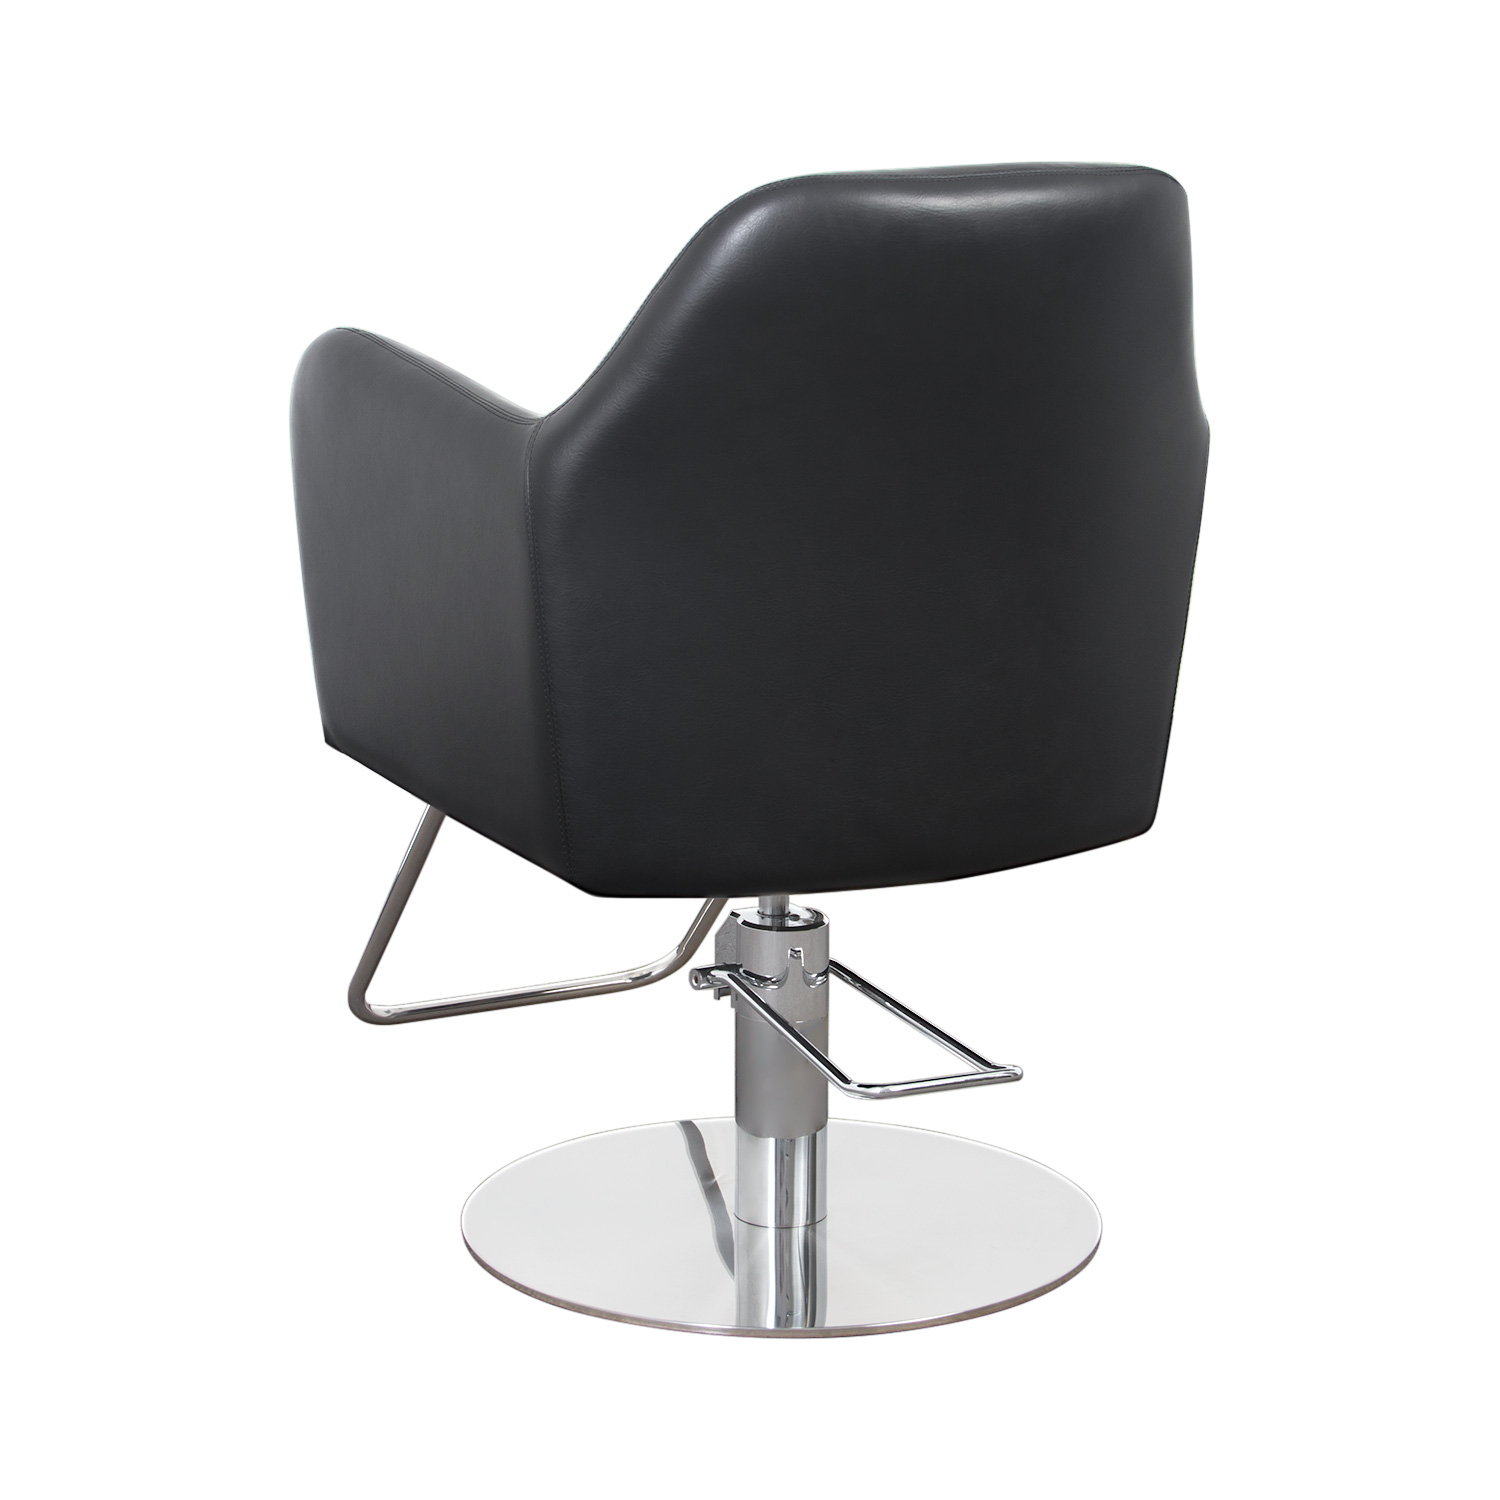 Loft Hair Stylist Chair alternative product image 5